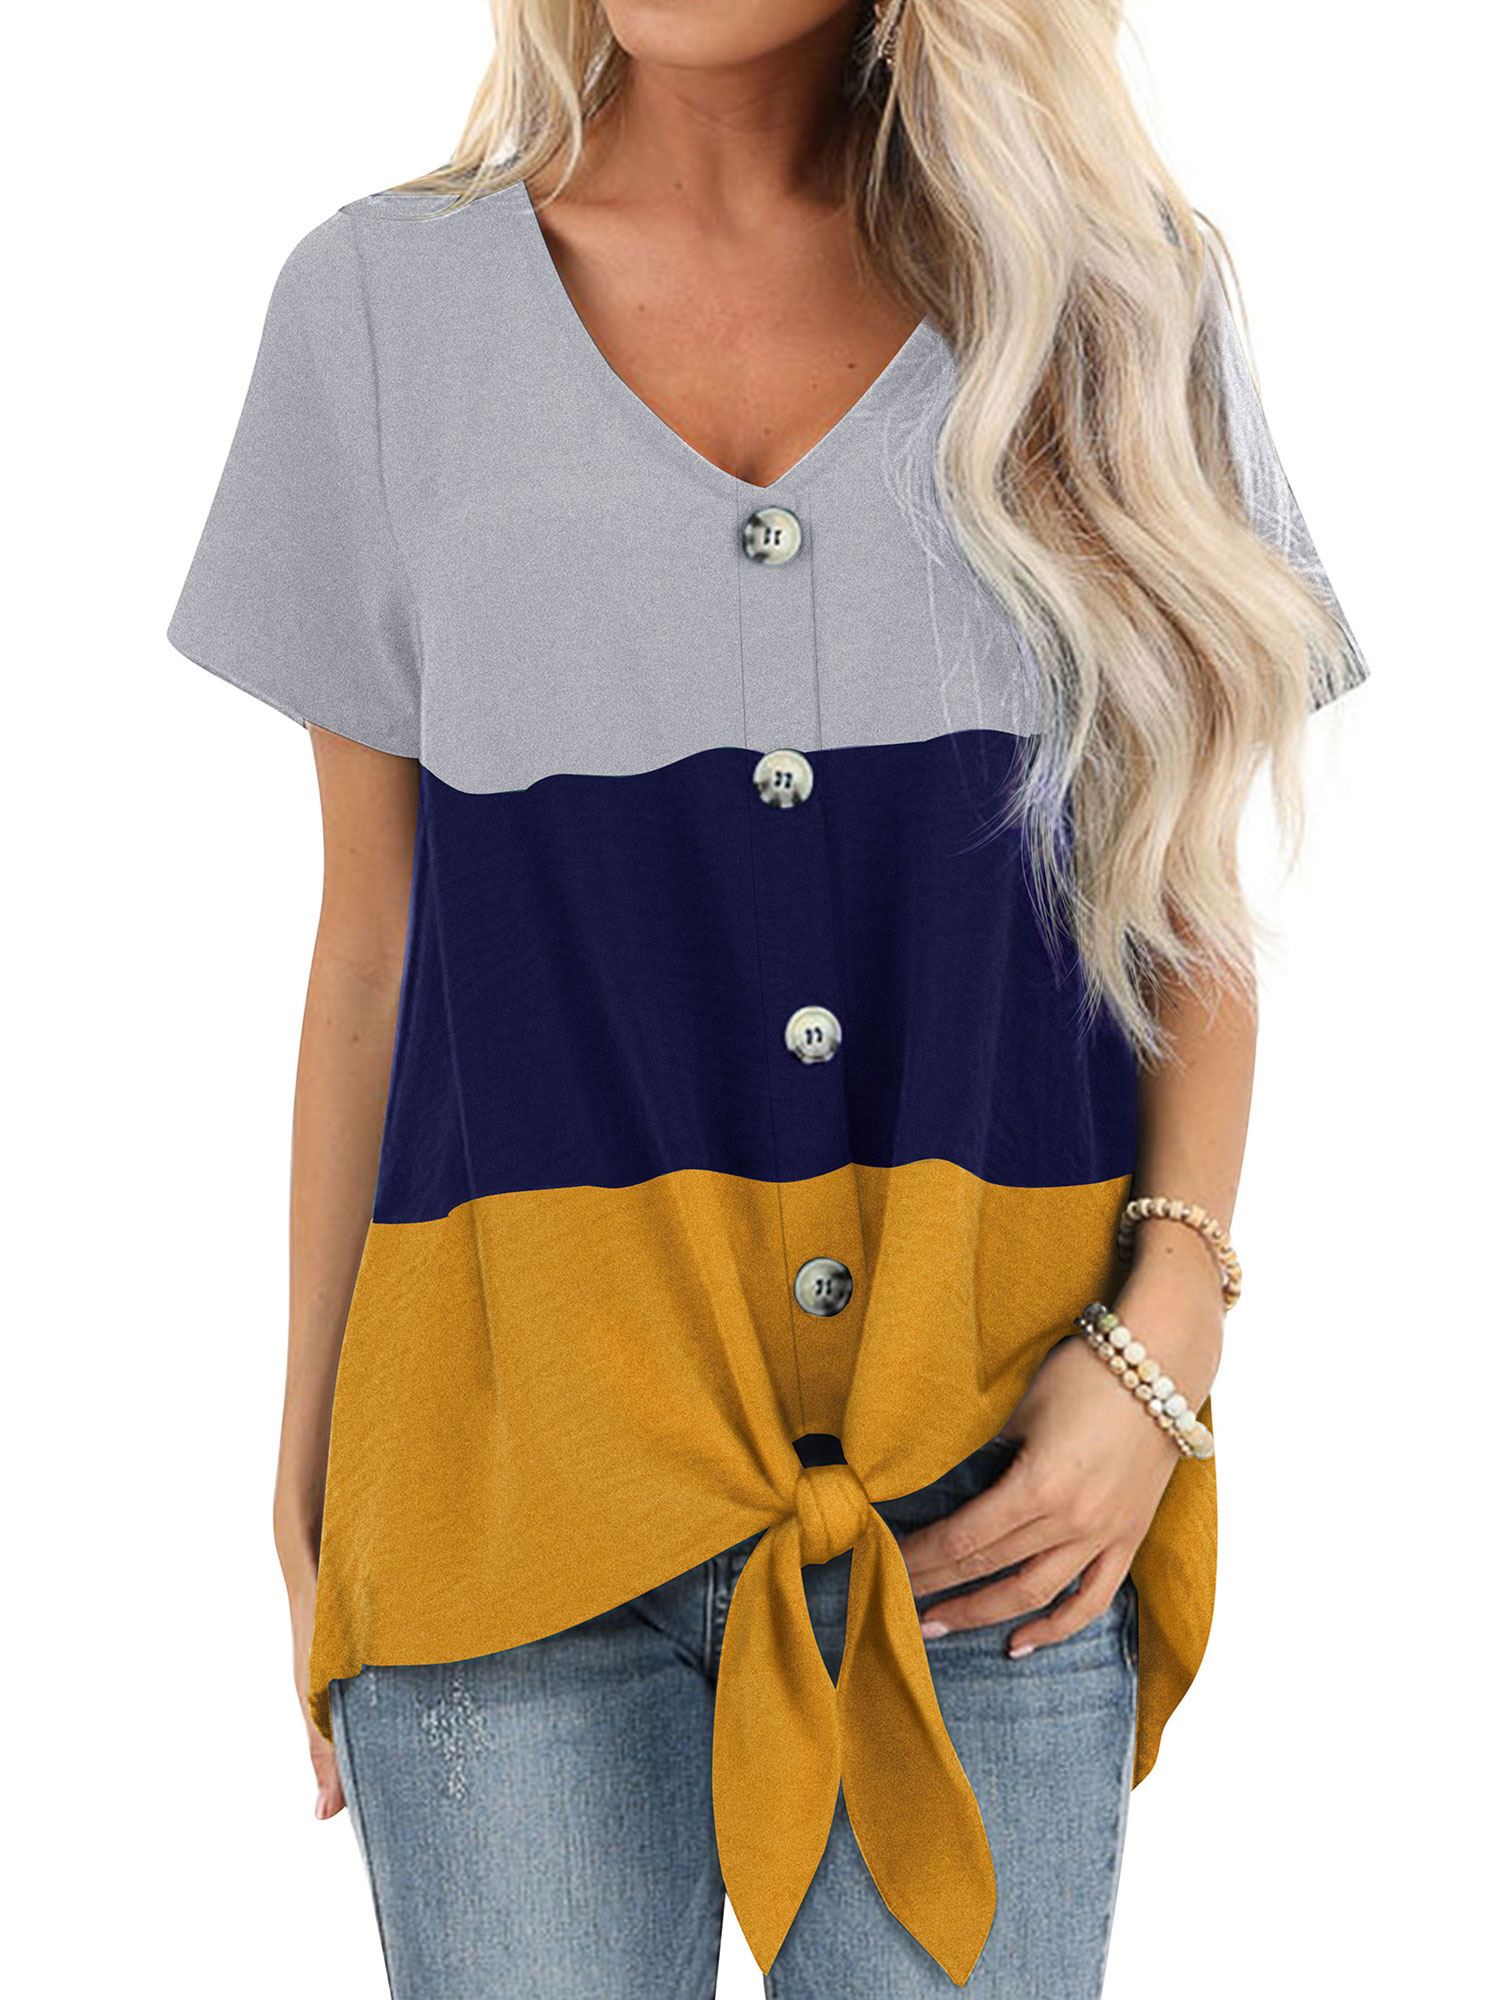 Gilroy Womens T-Shirt Solid Color Summer V Neck Cold Shoulder Short Sleeve Cross Pleated Tops